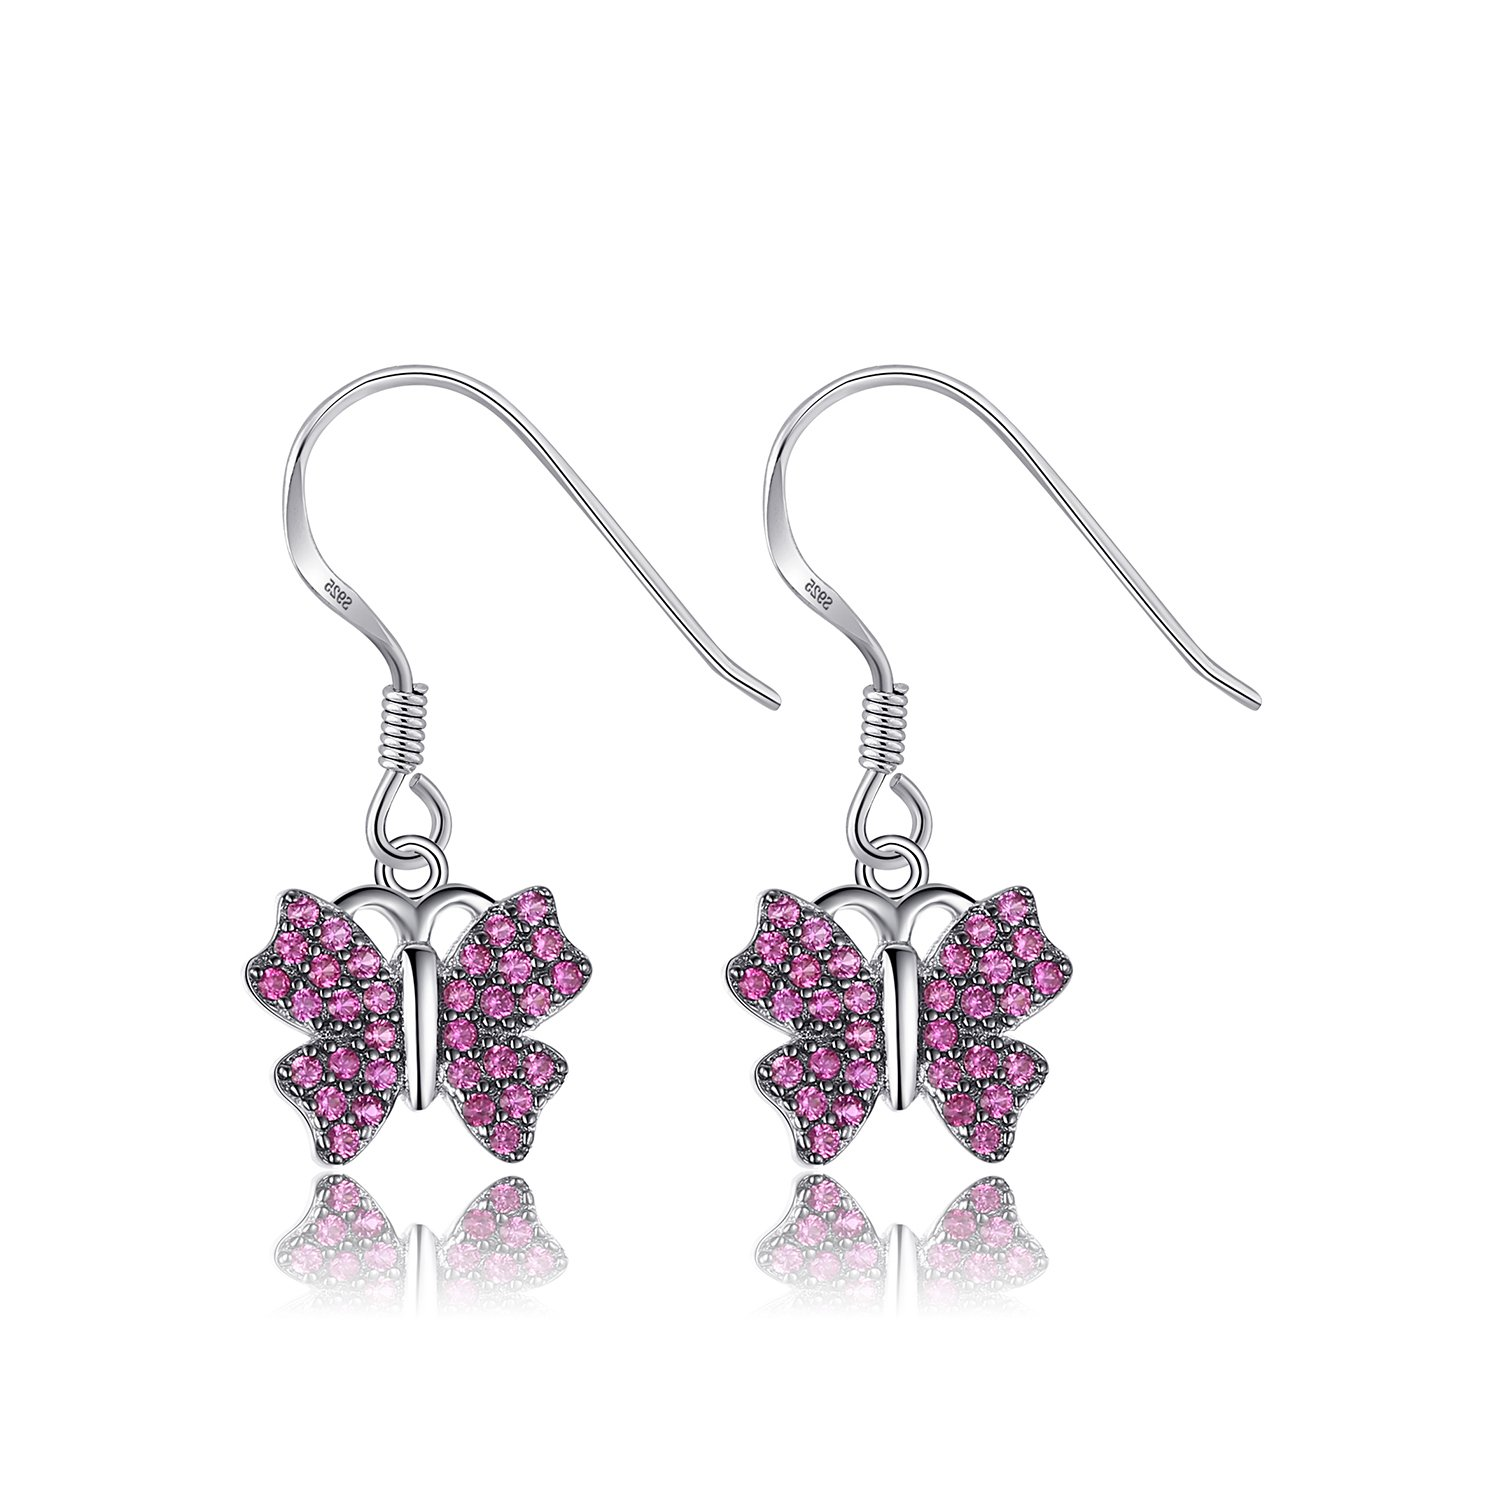 JewelryPalace Womens Exquisite Natural Birthstones Gemstones Pearl Multicolor Earrings 925 Sterling Silver